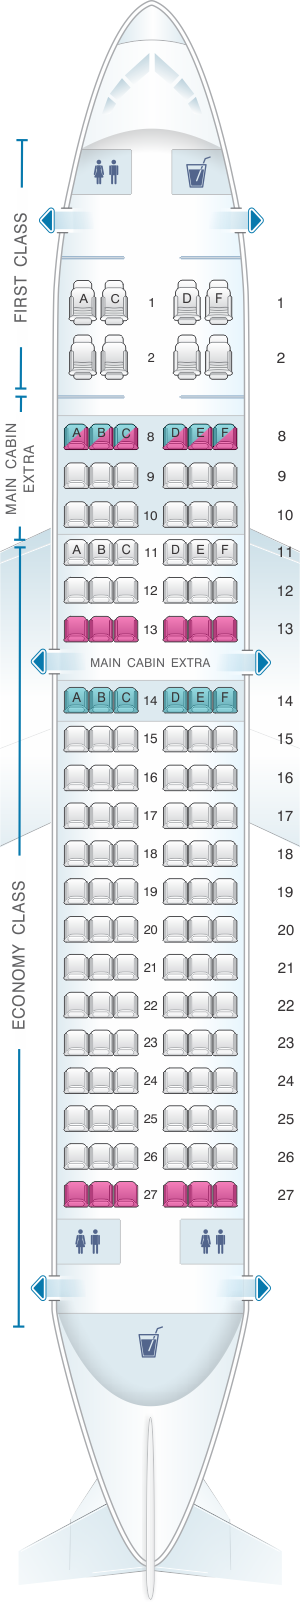 Seat map for American Airlines Airbus A319